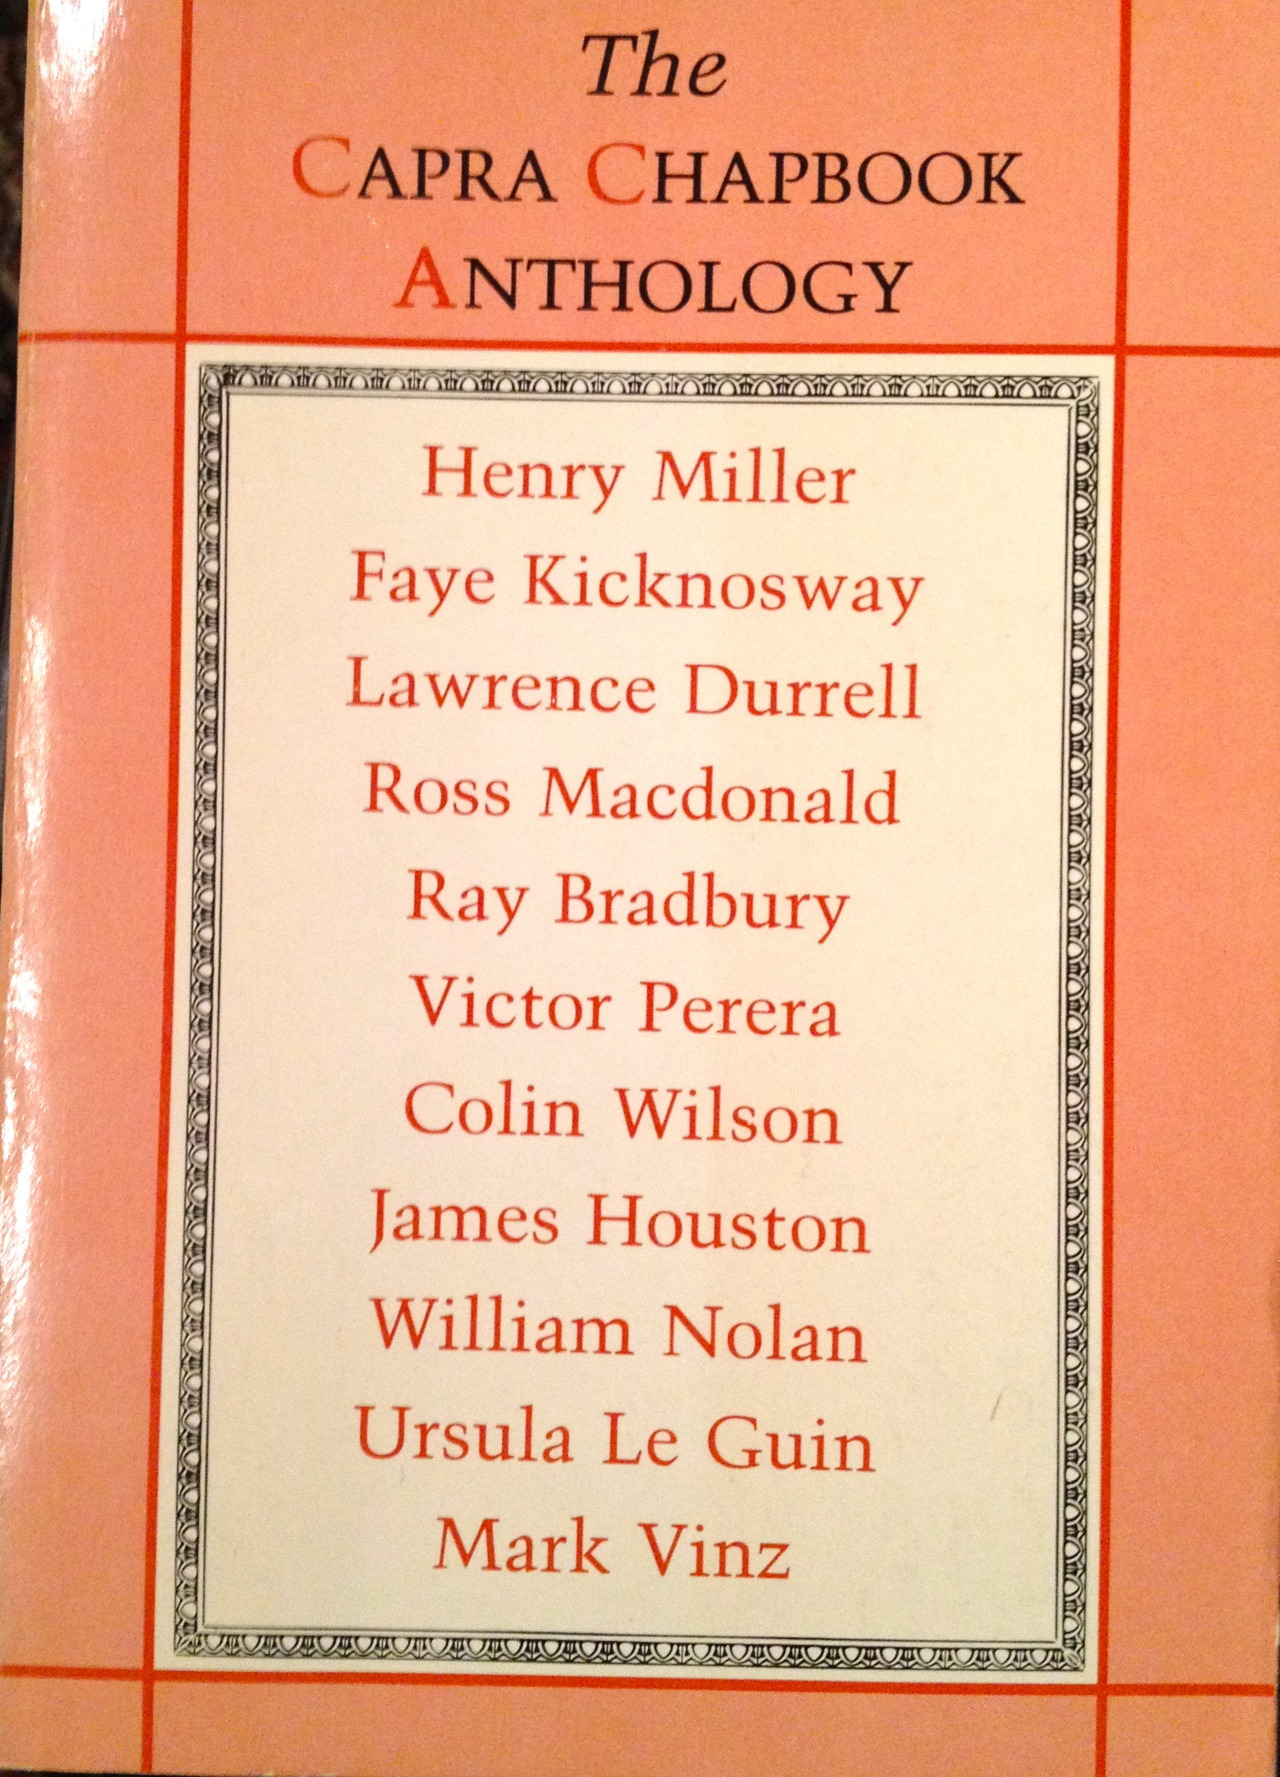 this old book palafo this is a 1979 collection of chapbooks or literary pamphlets that were published by